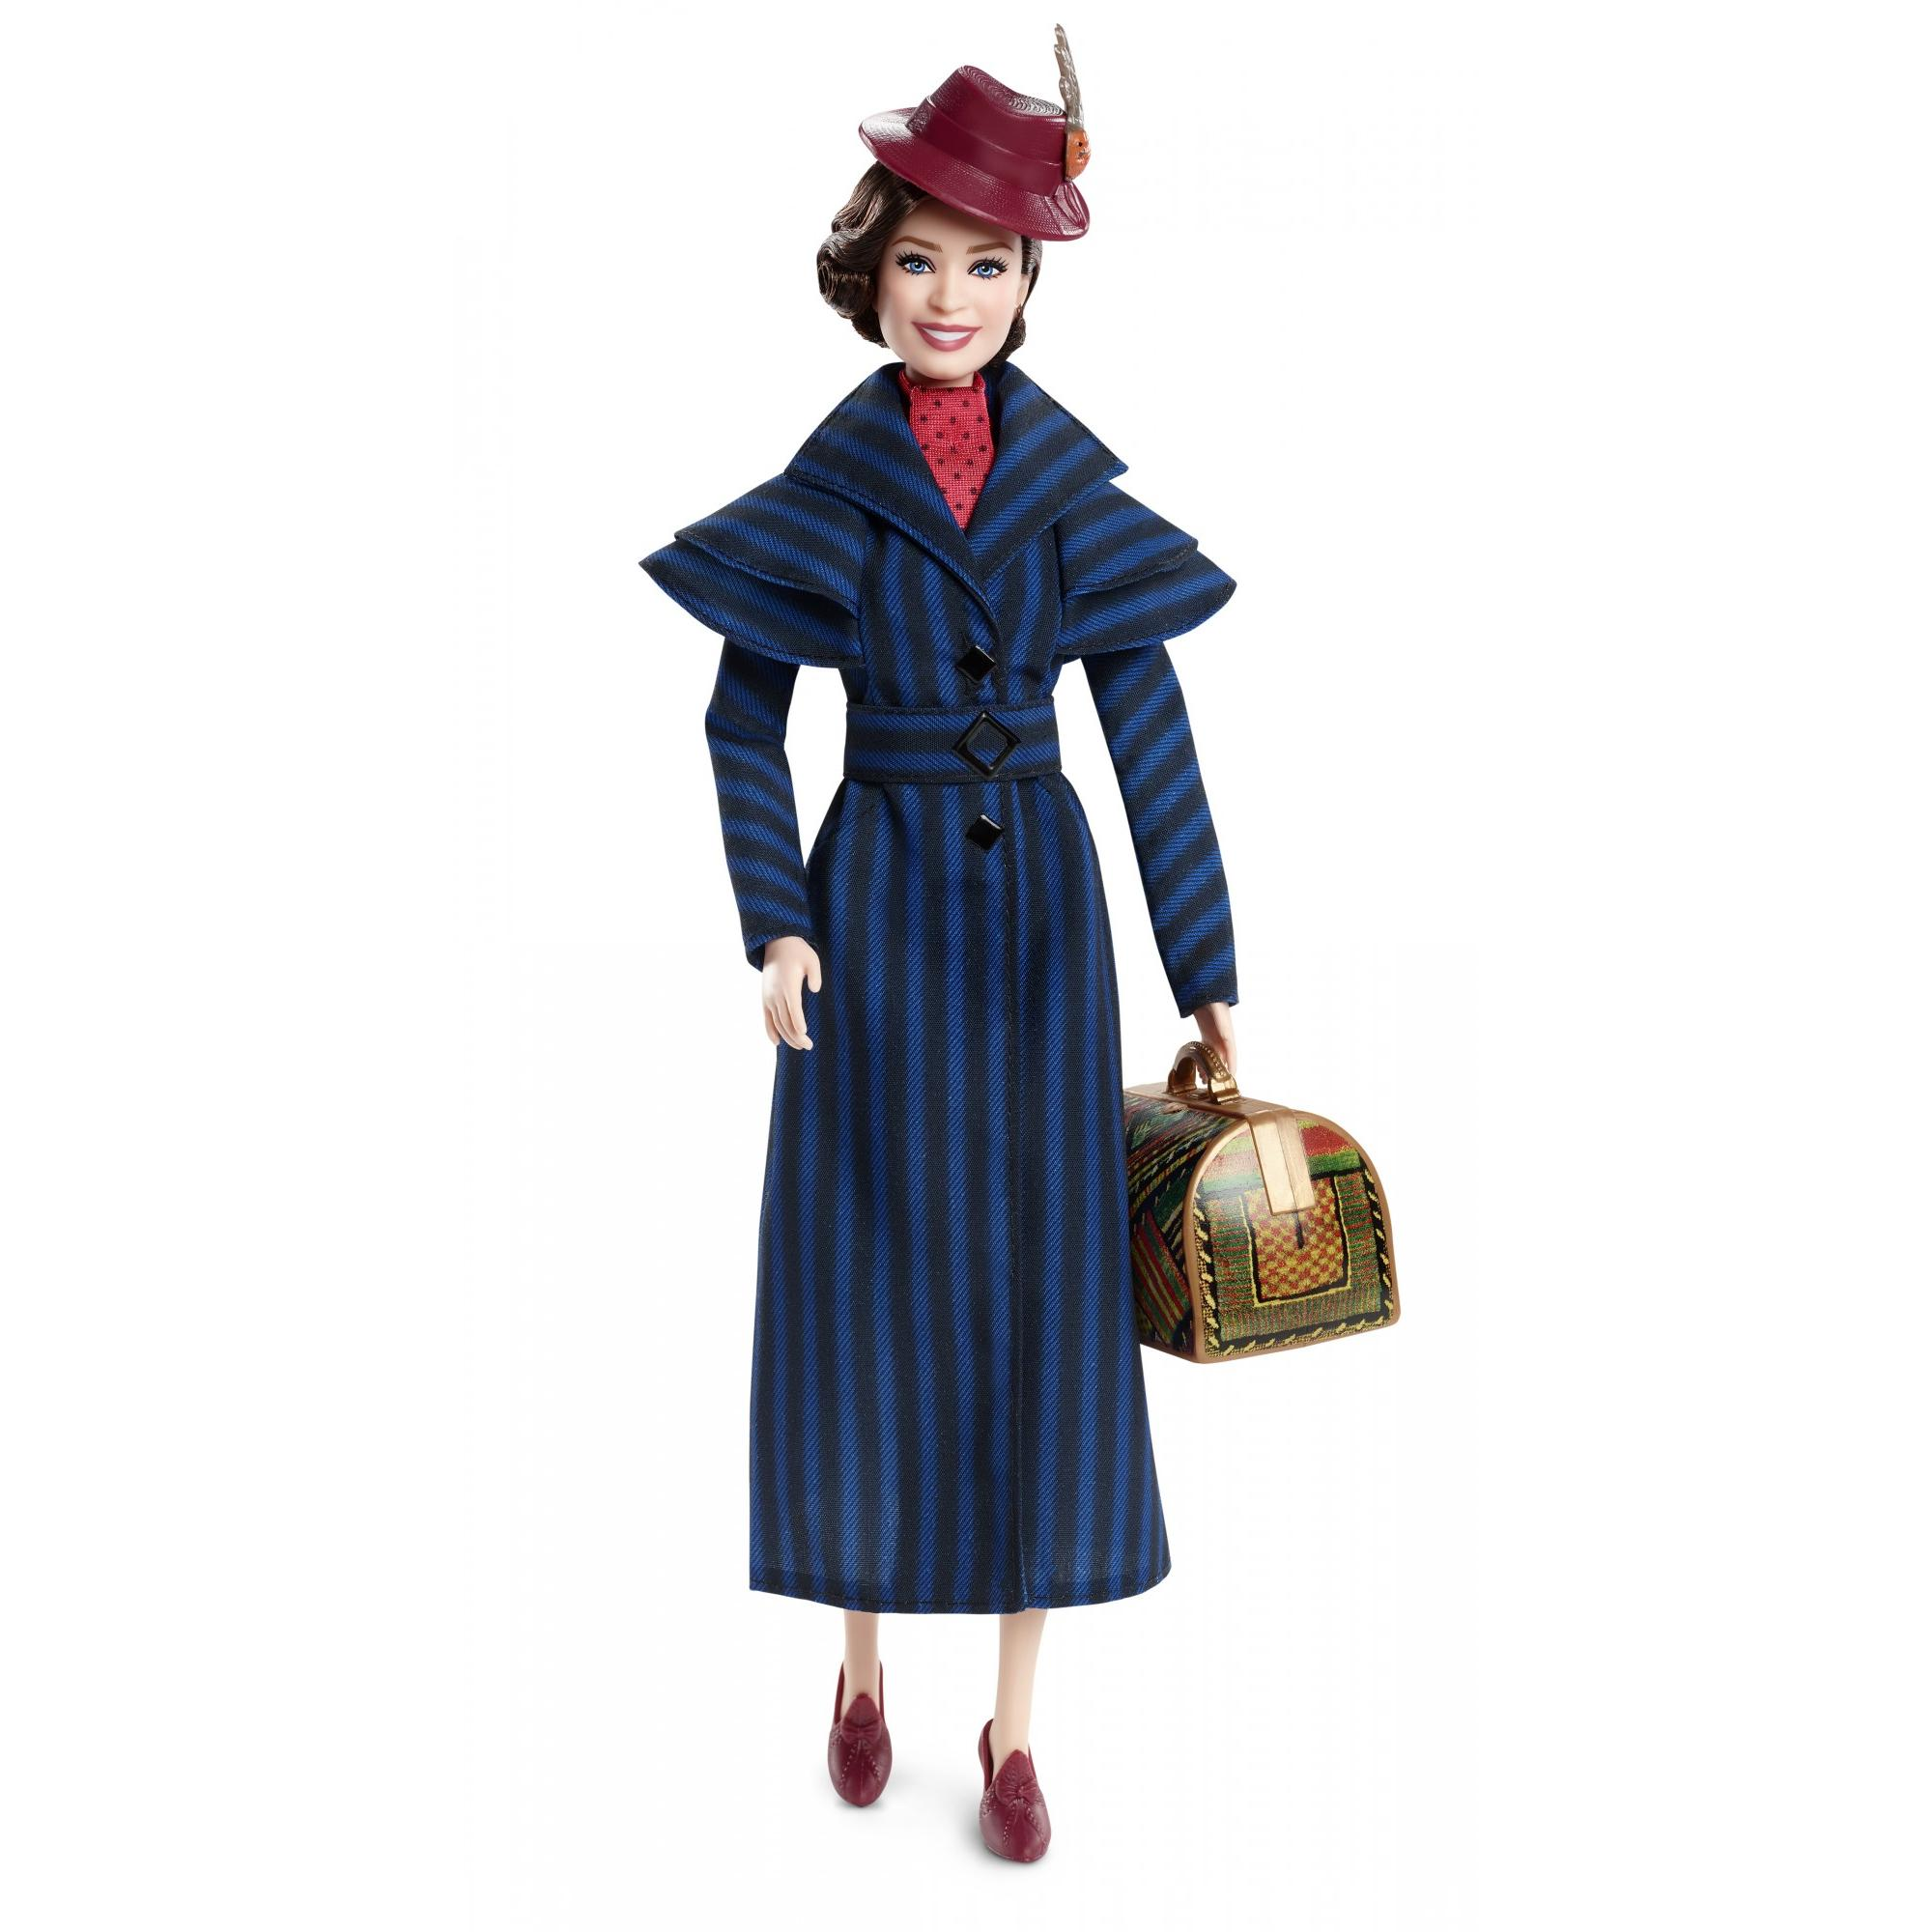 Disney Mary Poppins Returns Mary Poppins Arrives Barbie Doll